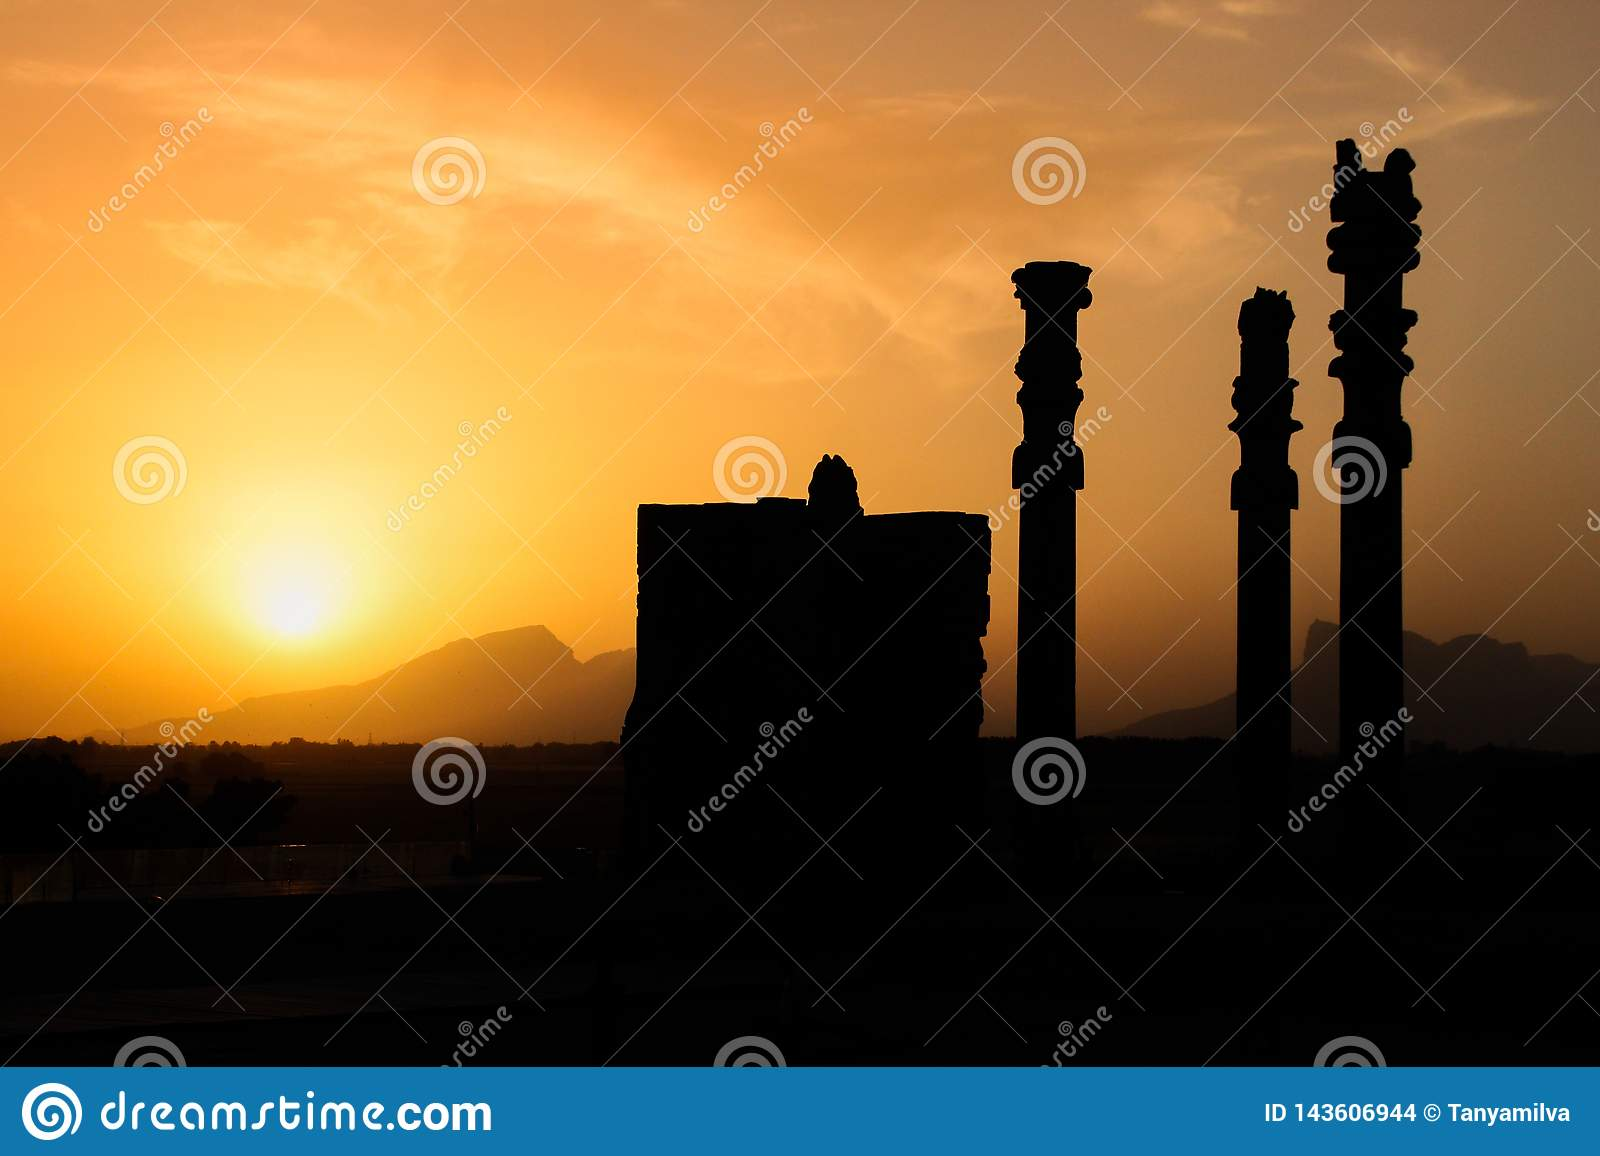 The famous ancient city of Persepolis in Iran Persia at sunset.